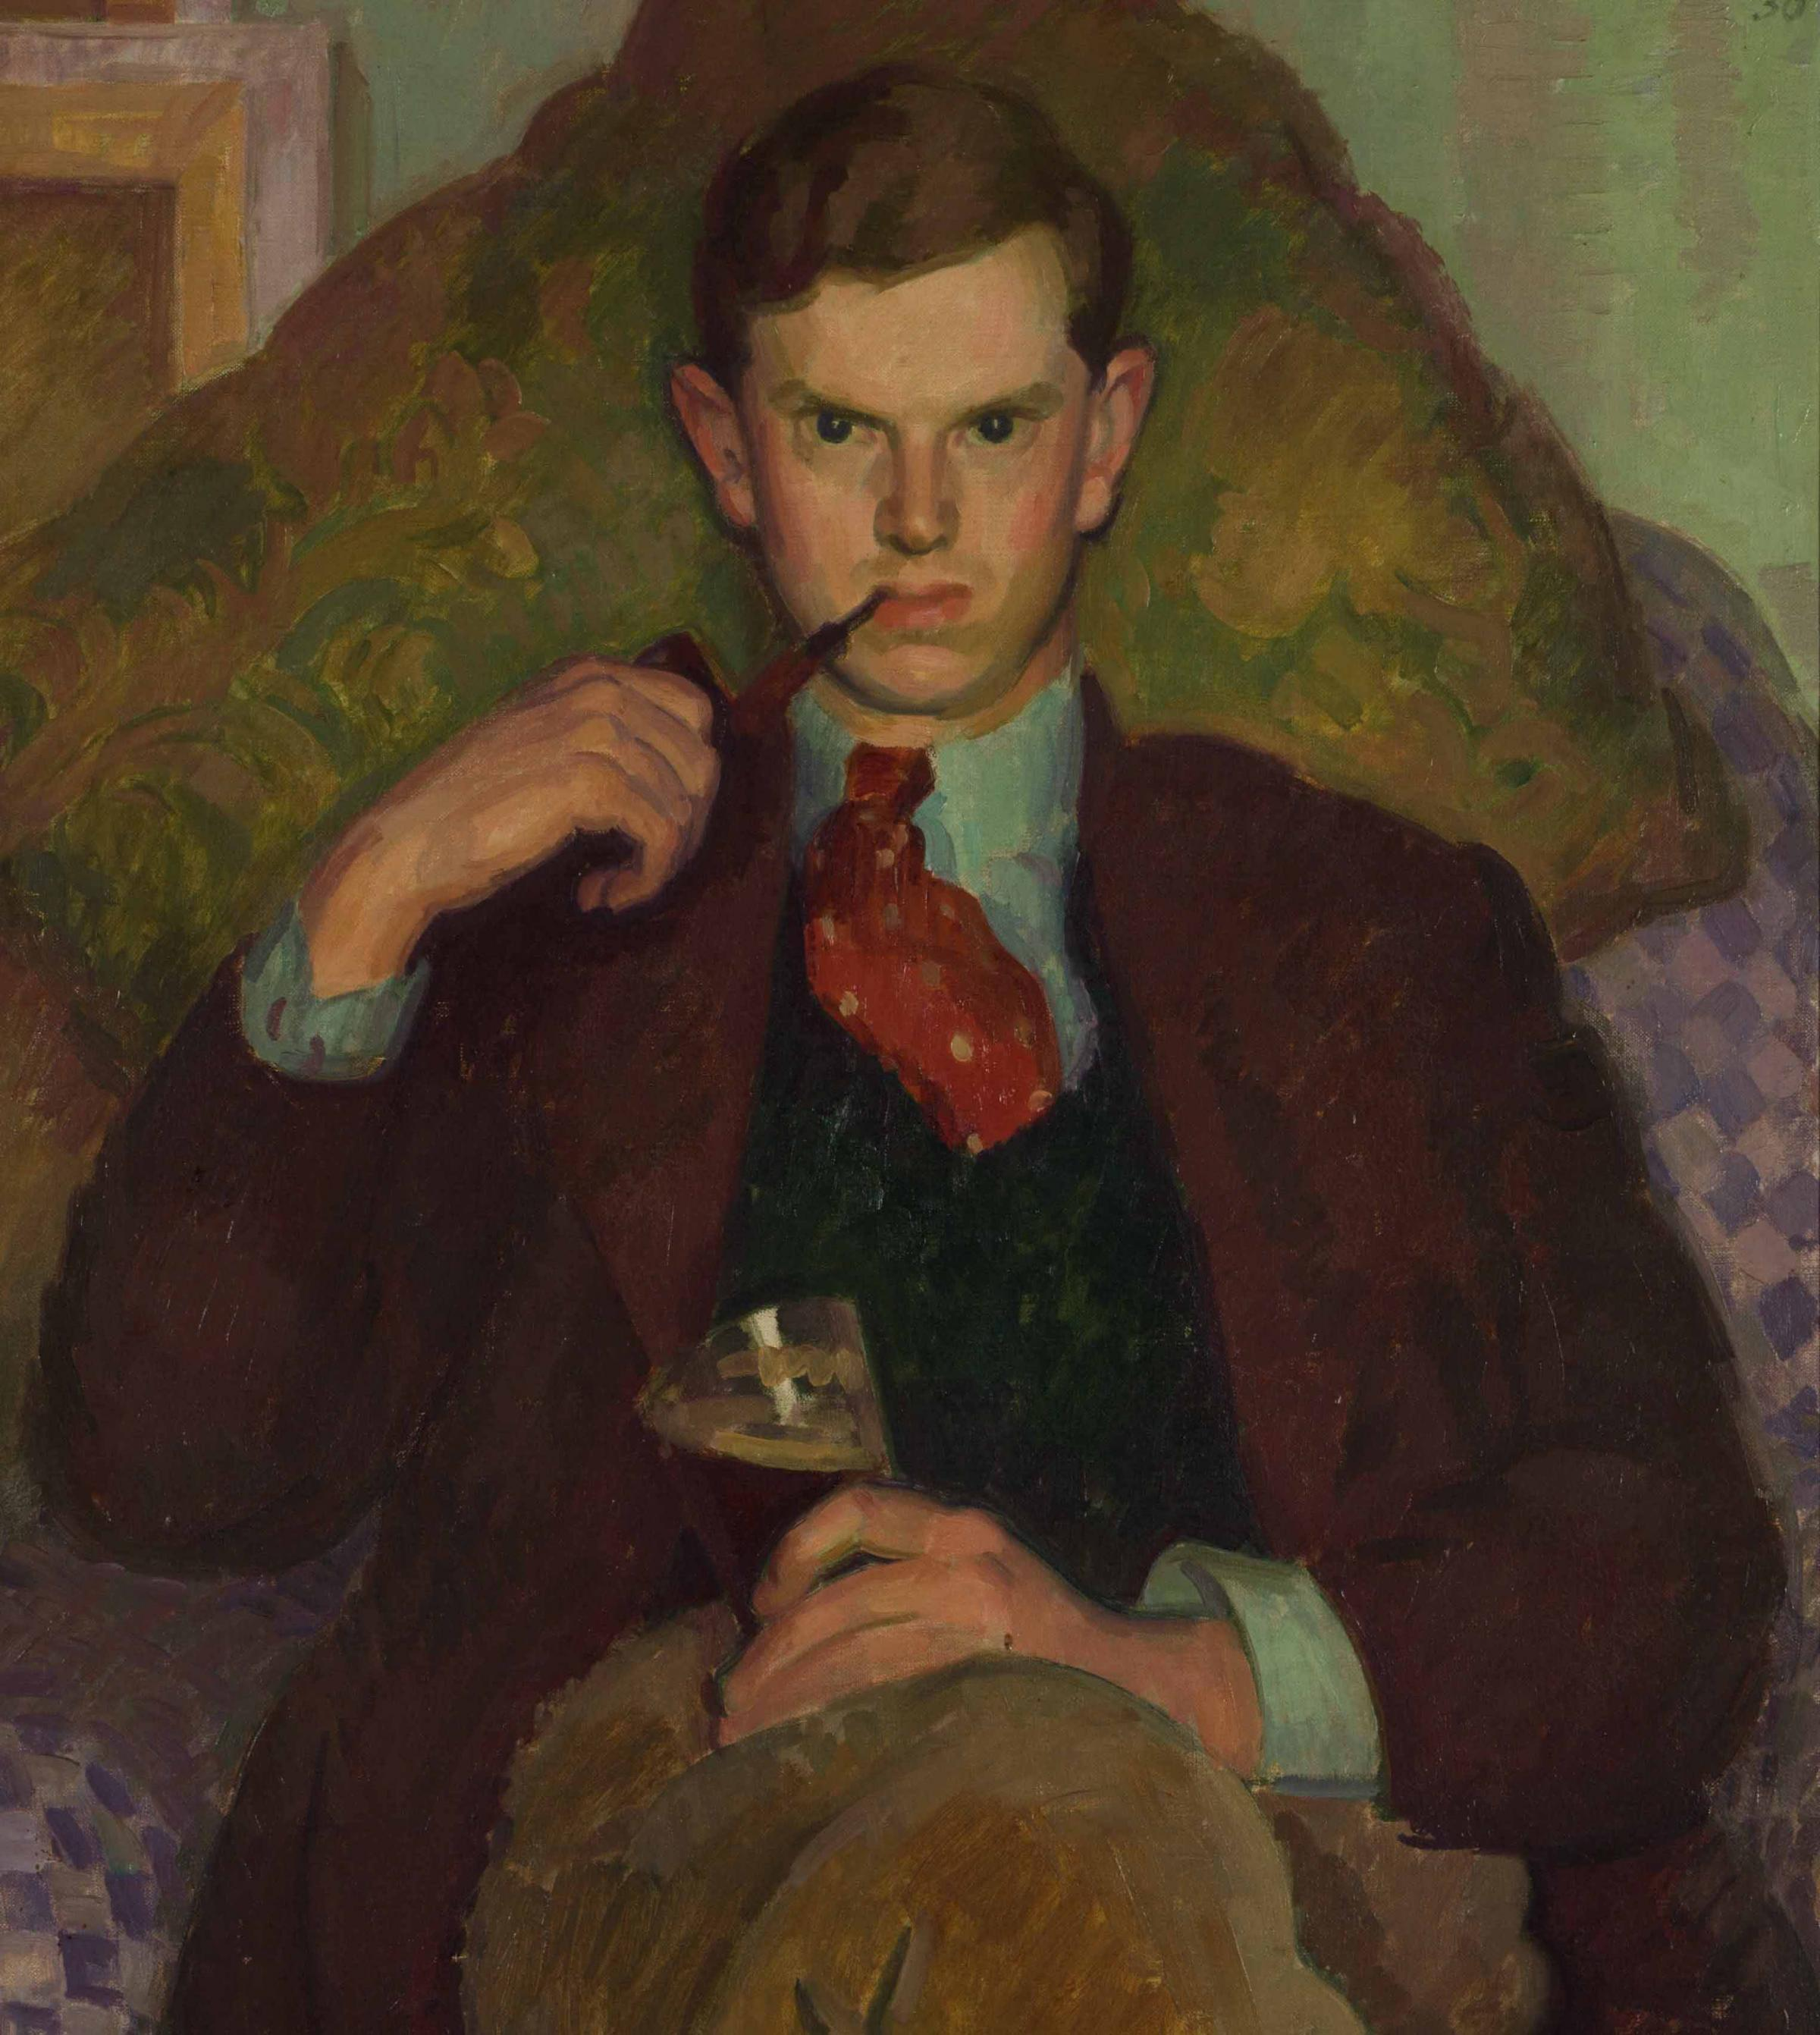 Evelyn Waugh, 1930, by Henry Lamb (Copyright Estate of Henry Lamb/Private Collection)